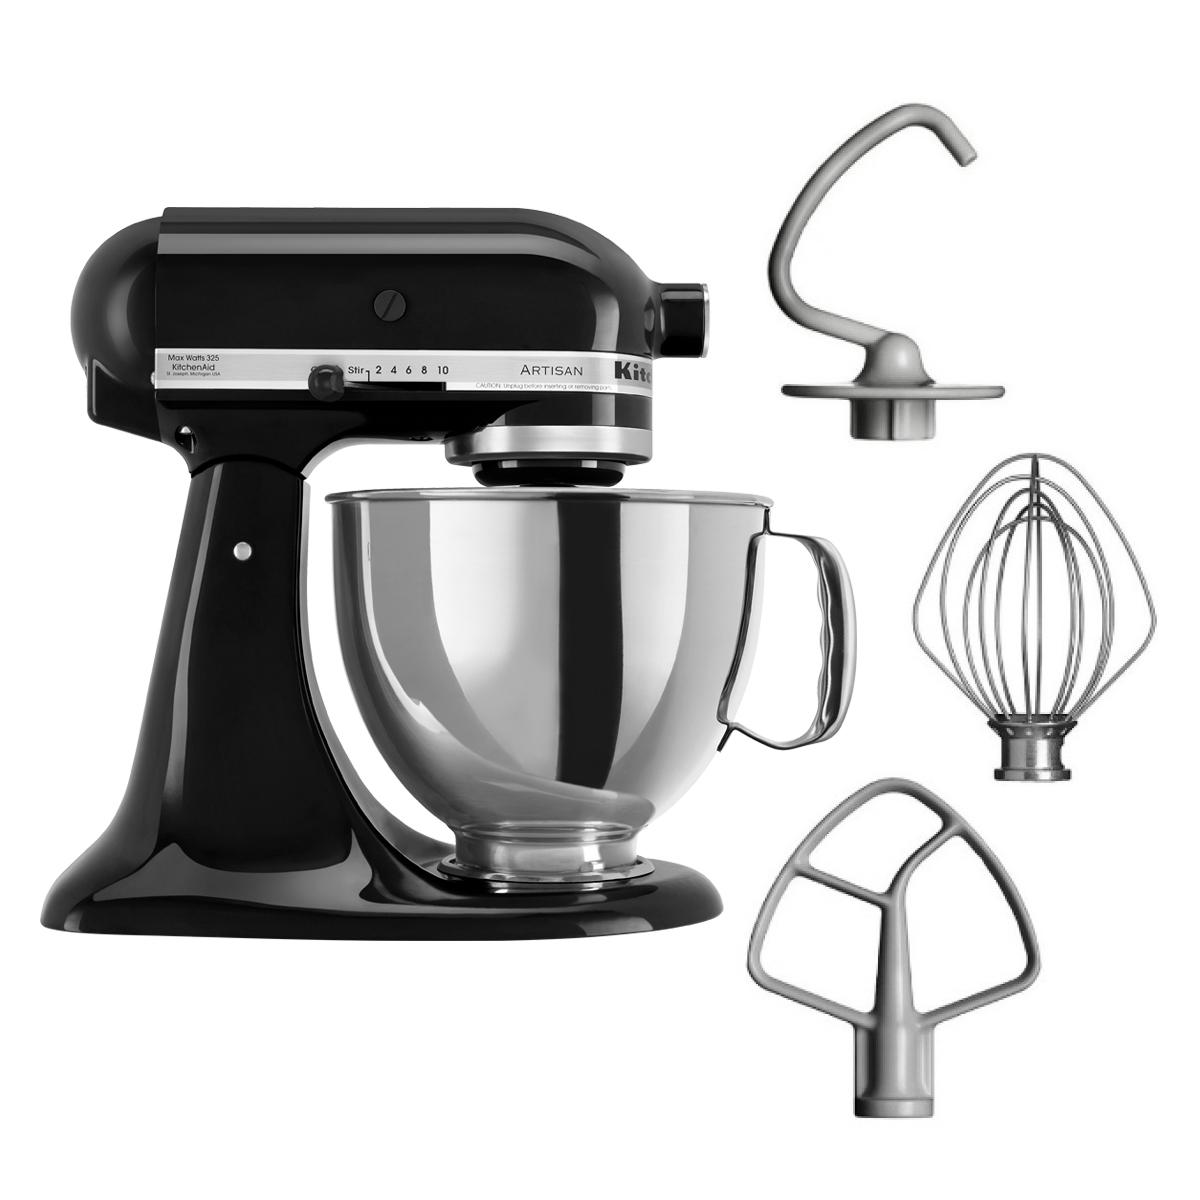 Kitchenaid Artisan Stand Mixer 5ksm125b With 4 8l Bowl Stand Mixer Cover And Food Grinder Attachment Singapore